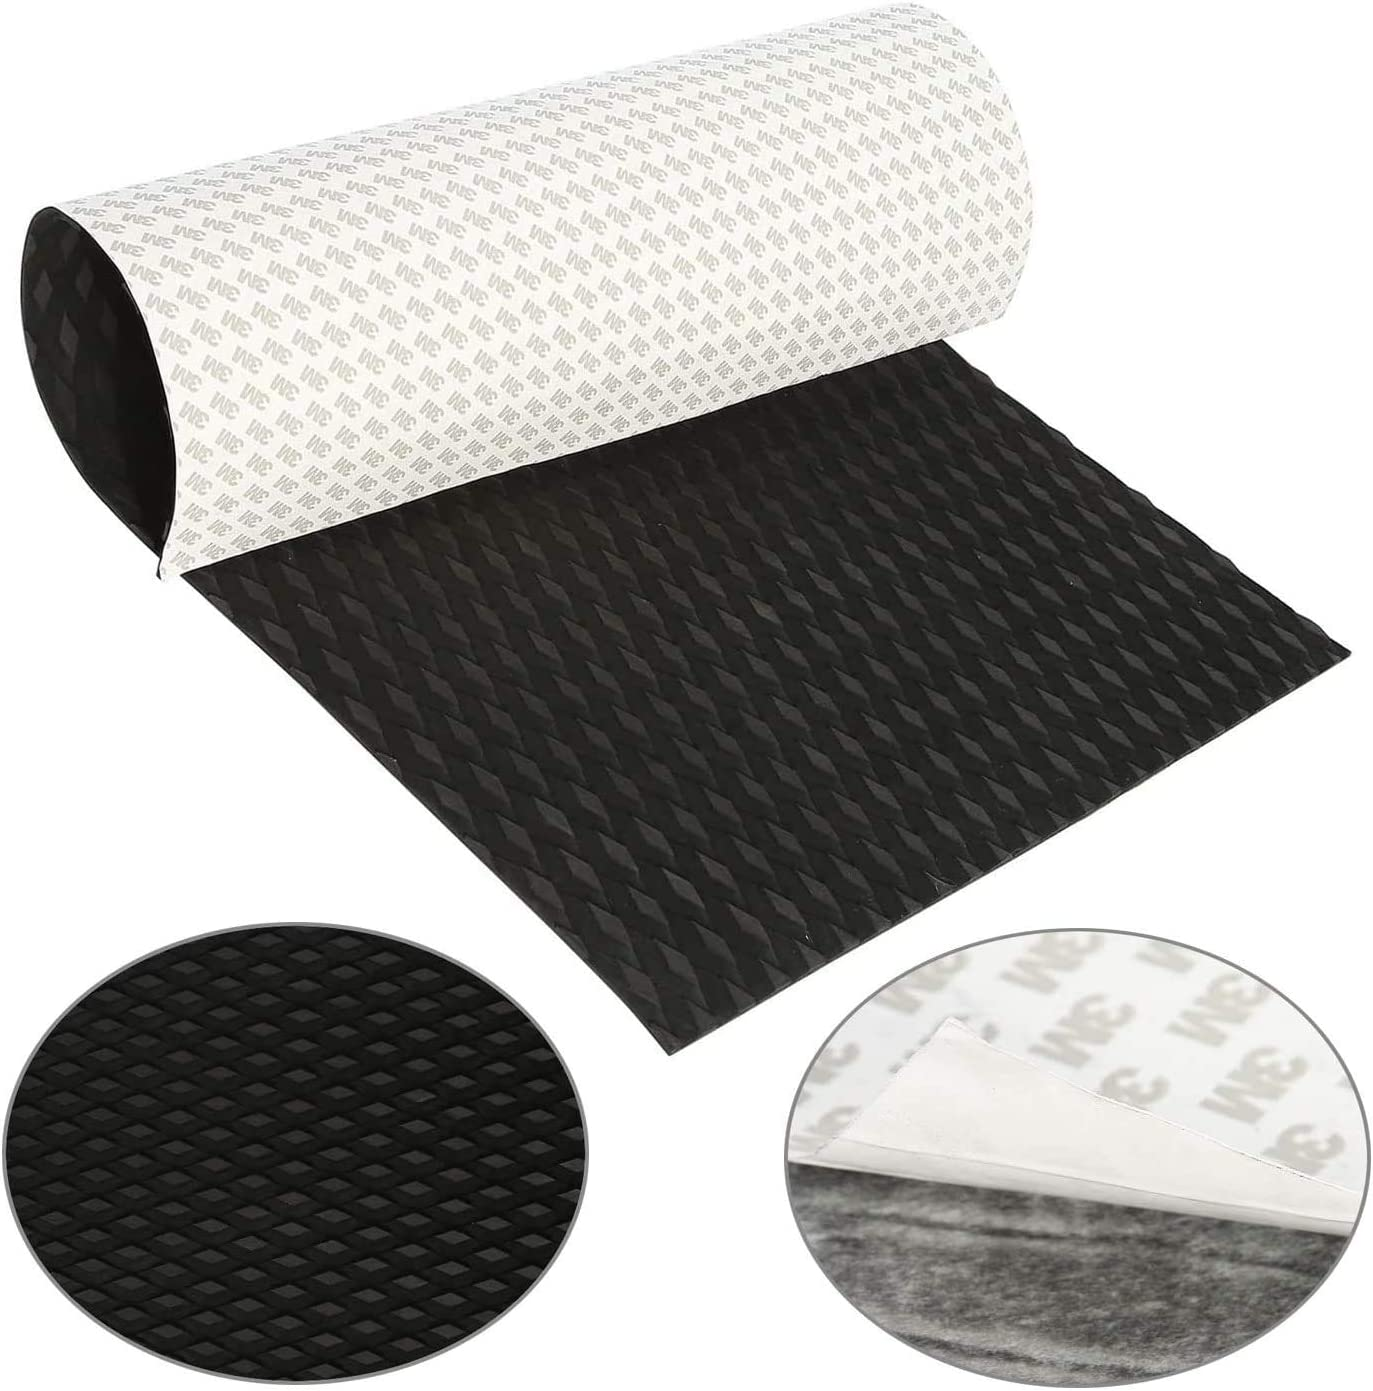 """NovelBee 40"""" x 20"""" x 0.22"""" Universal DIY Traction Non-Slip Grip Mat Pad with Trimmable EVA Sheet for Boat Decks,Kayak,Surfboard (Black)"""